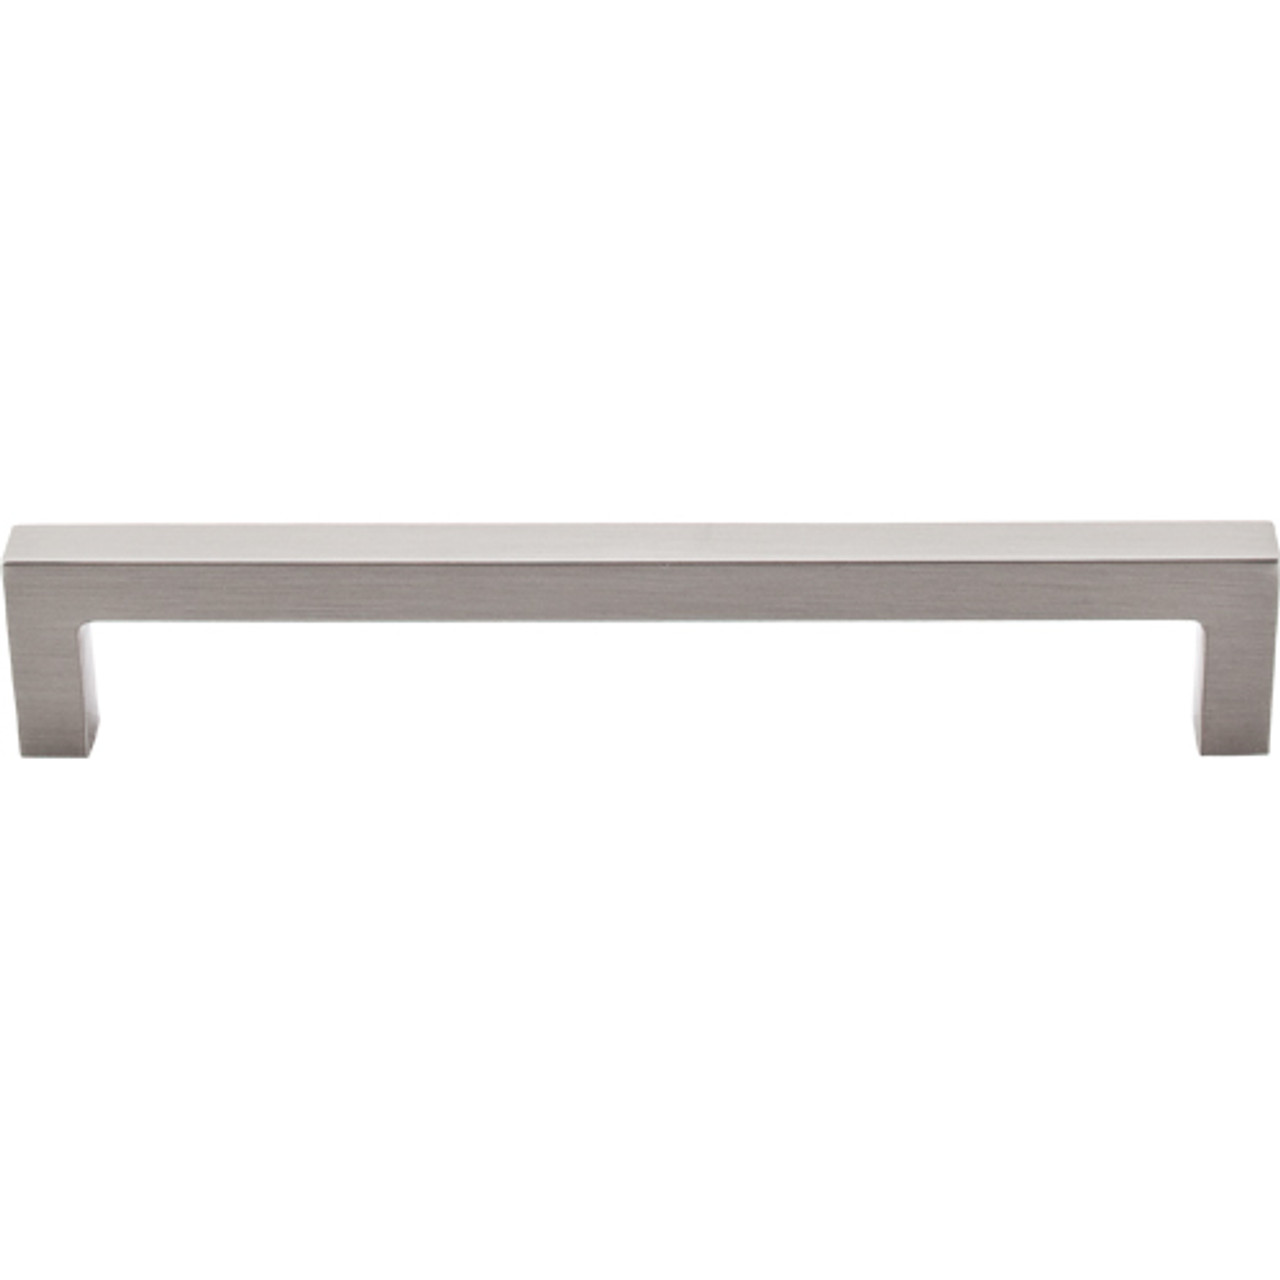 Top Knobs - Square Bar Pull    - Brushed Satin Nickel (TKM1155)